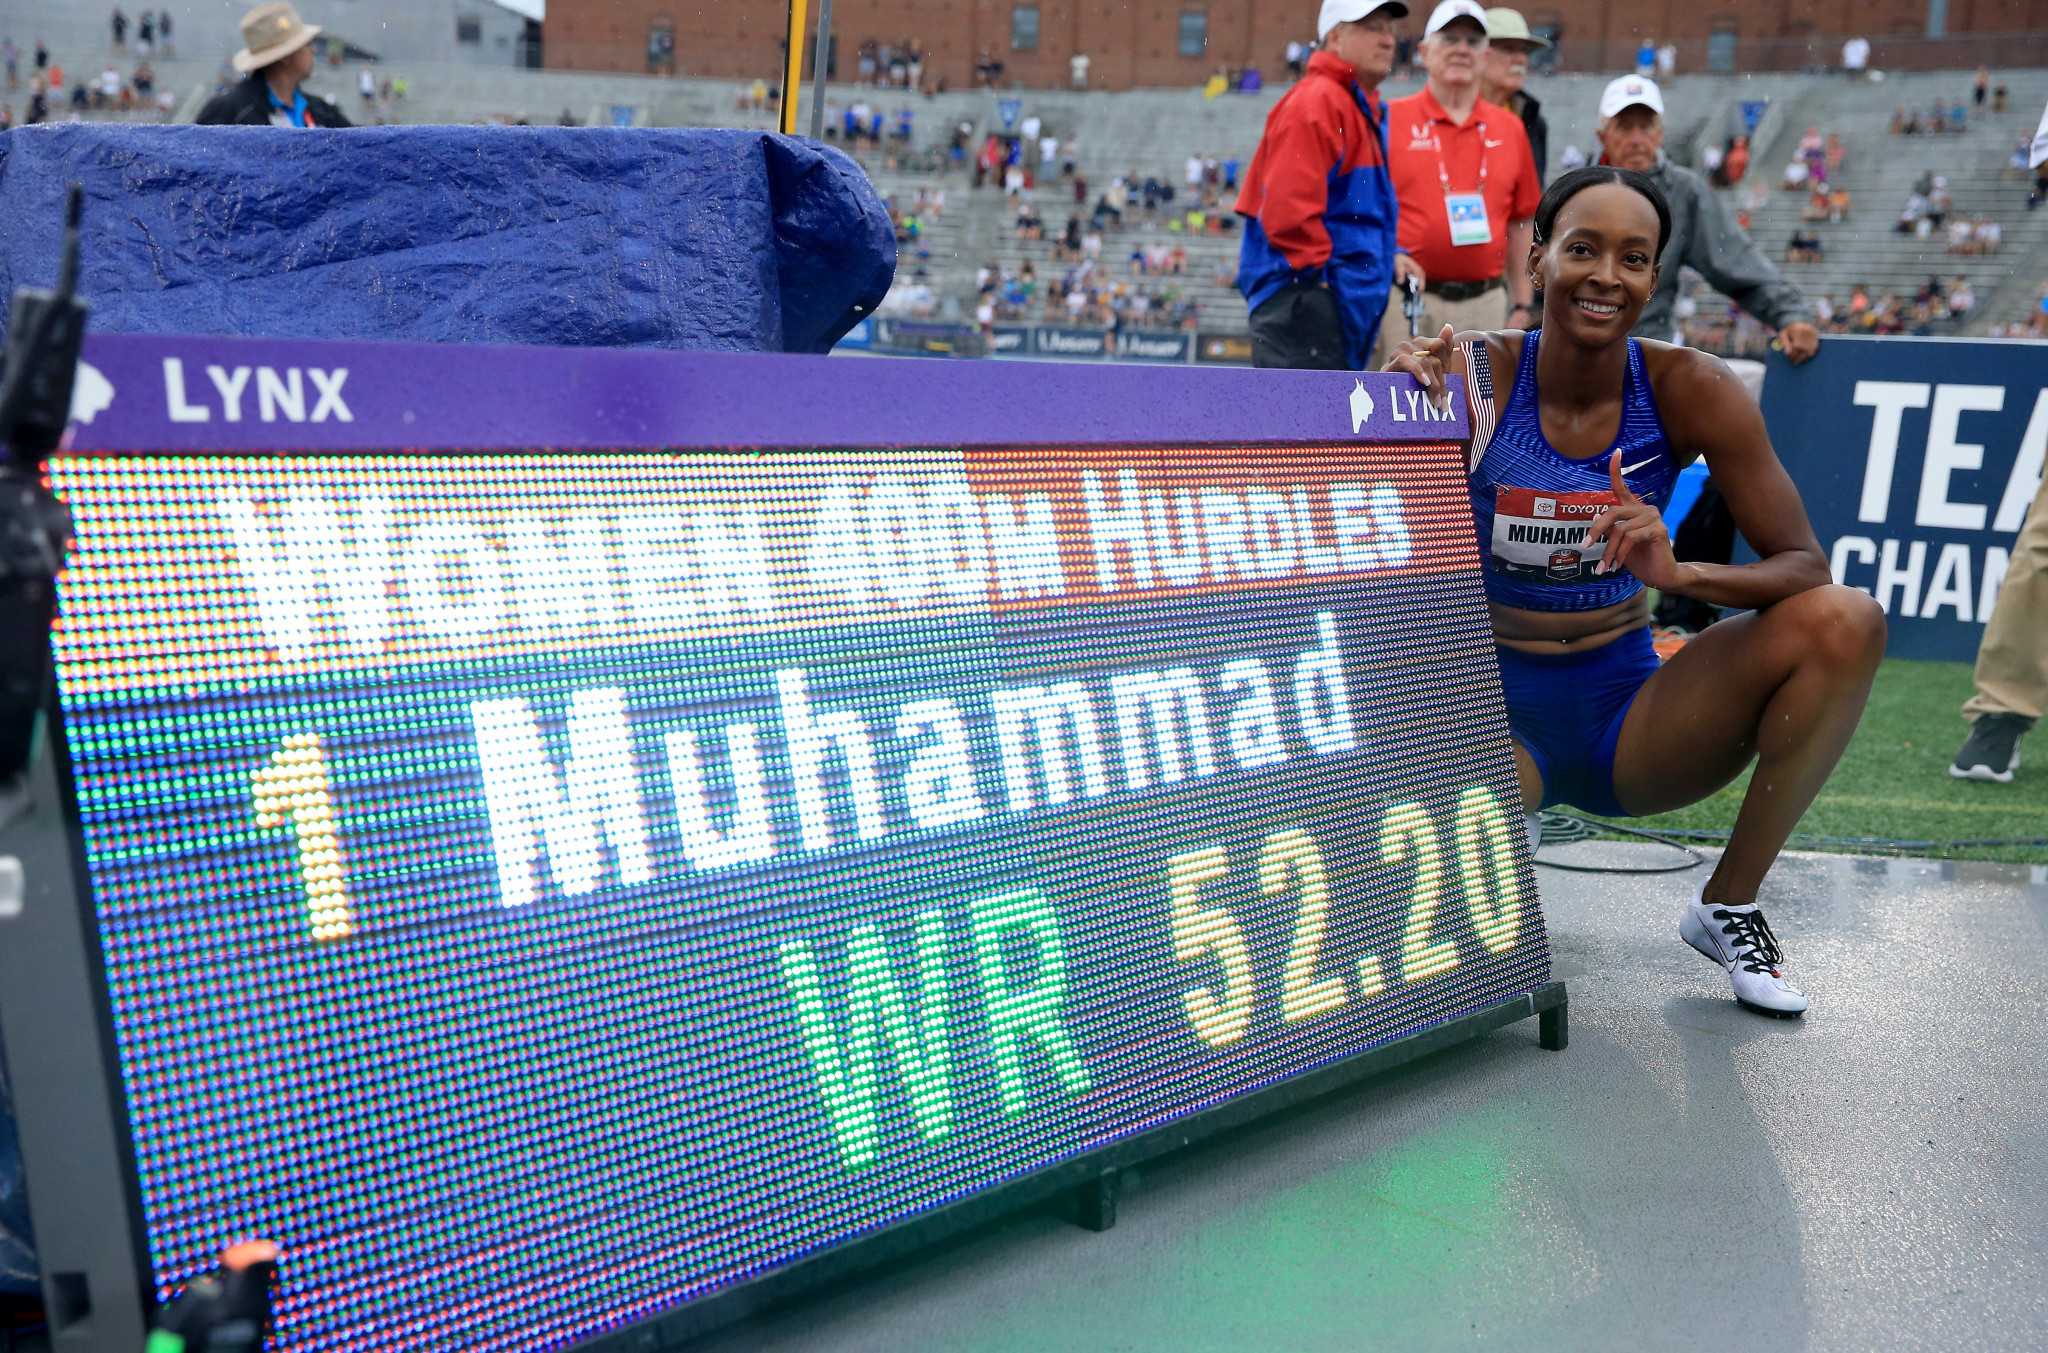 Olympic champion Dalilah Muhammad broke the world record in the women's 400 metres hurdles ©Getty Images